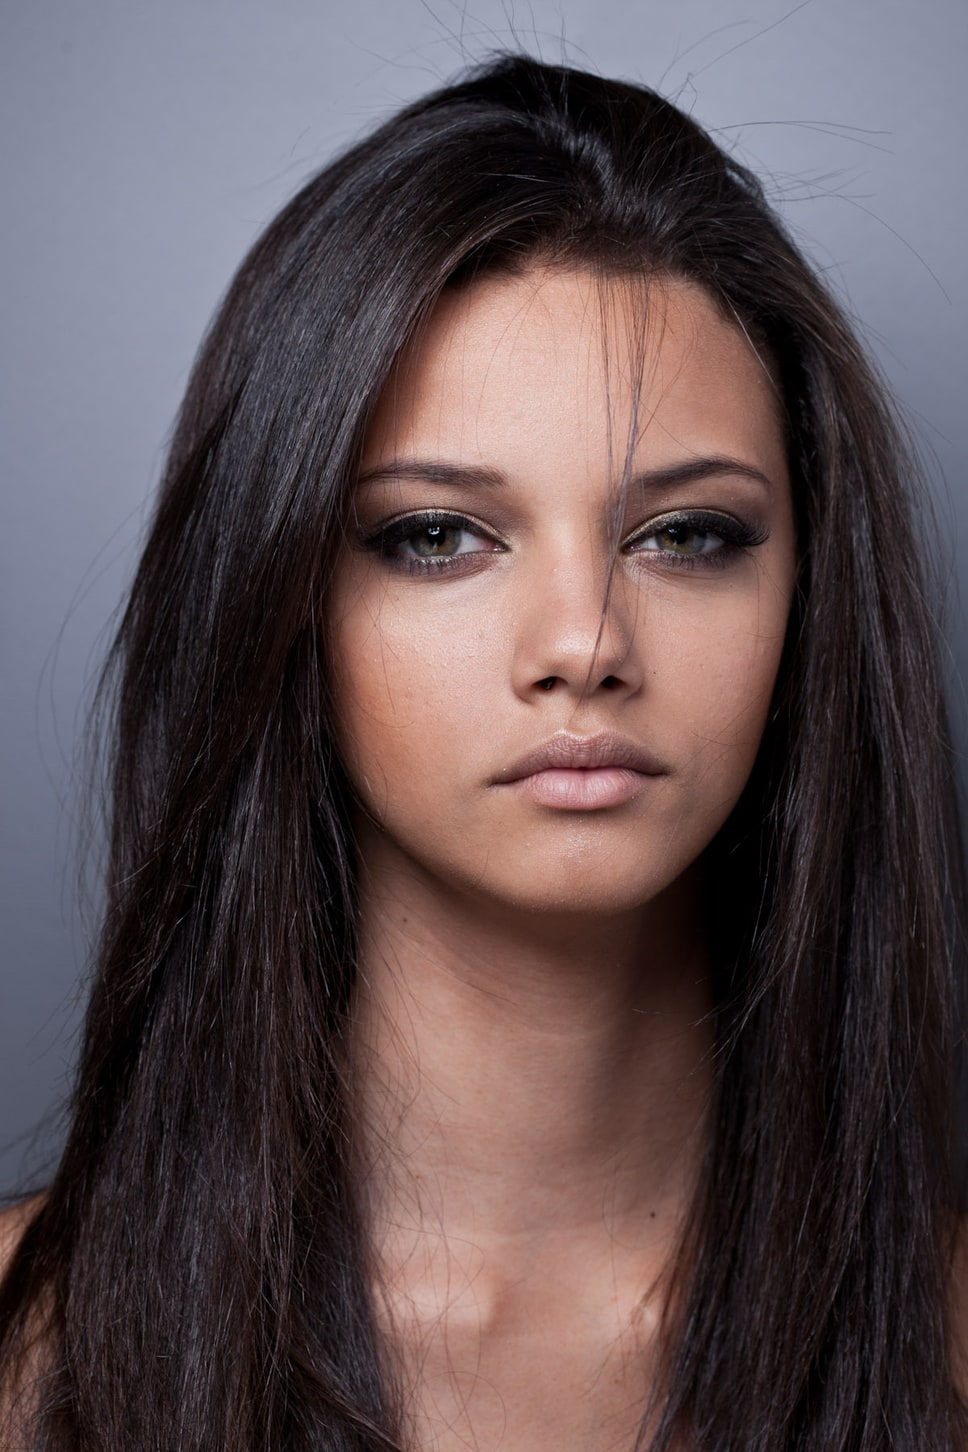 Picture Of Marina Nery. Incorporation Of Business Shared Bank Account. Commercial Video Production Dr Scott Dentist. Best Prepaid Cellphone Plan Cdl Training Tn. Wine Country Pack And Ship U Of M Mba Program. Equity Financial Services Brooklyn Cat Rescue. How To Make White Gravy For Biscuits. Integrated Software Solutions. Associate In Information Technology